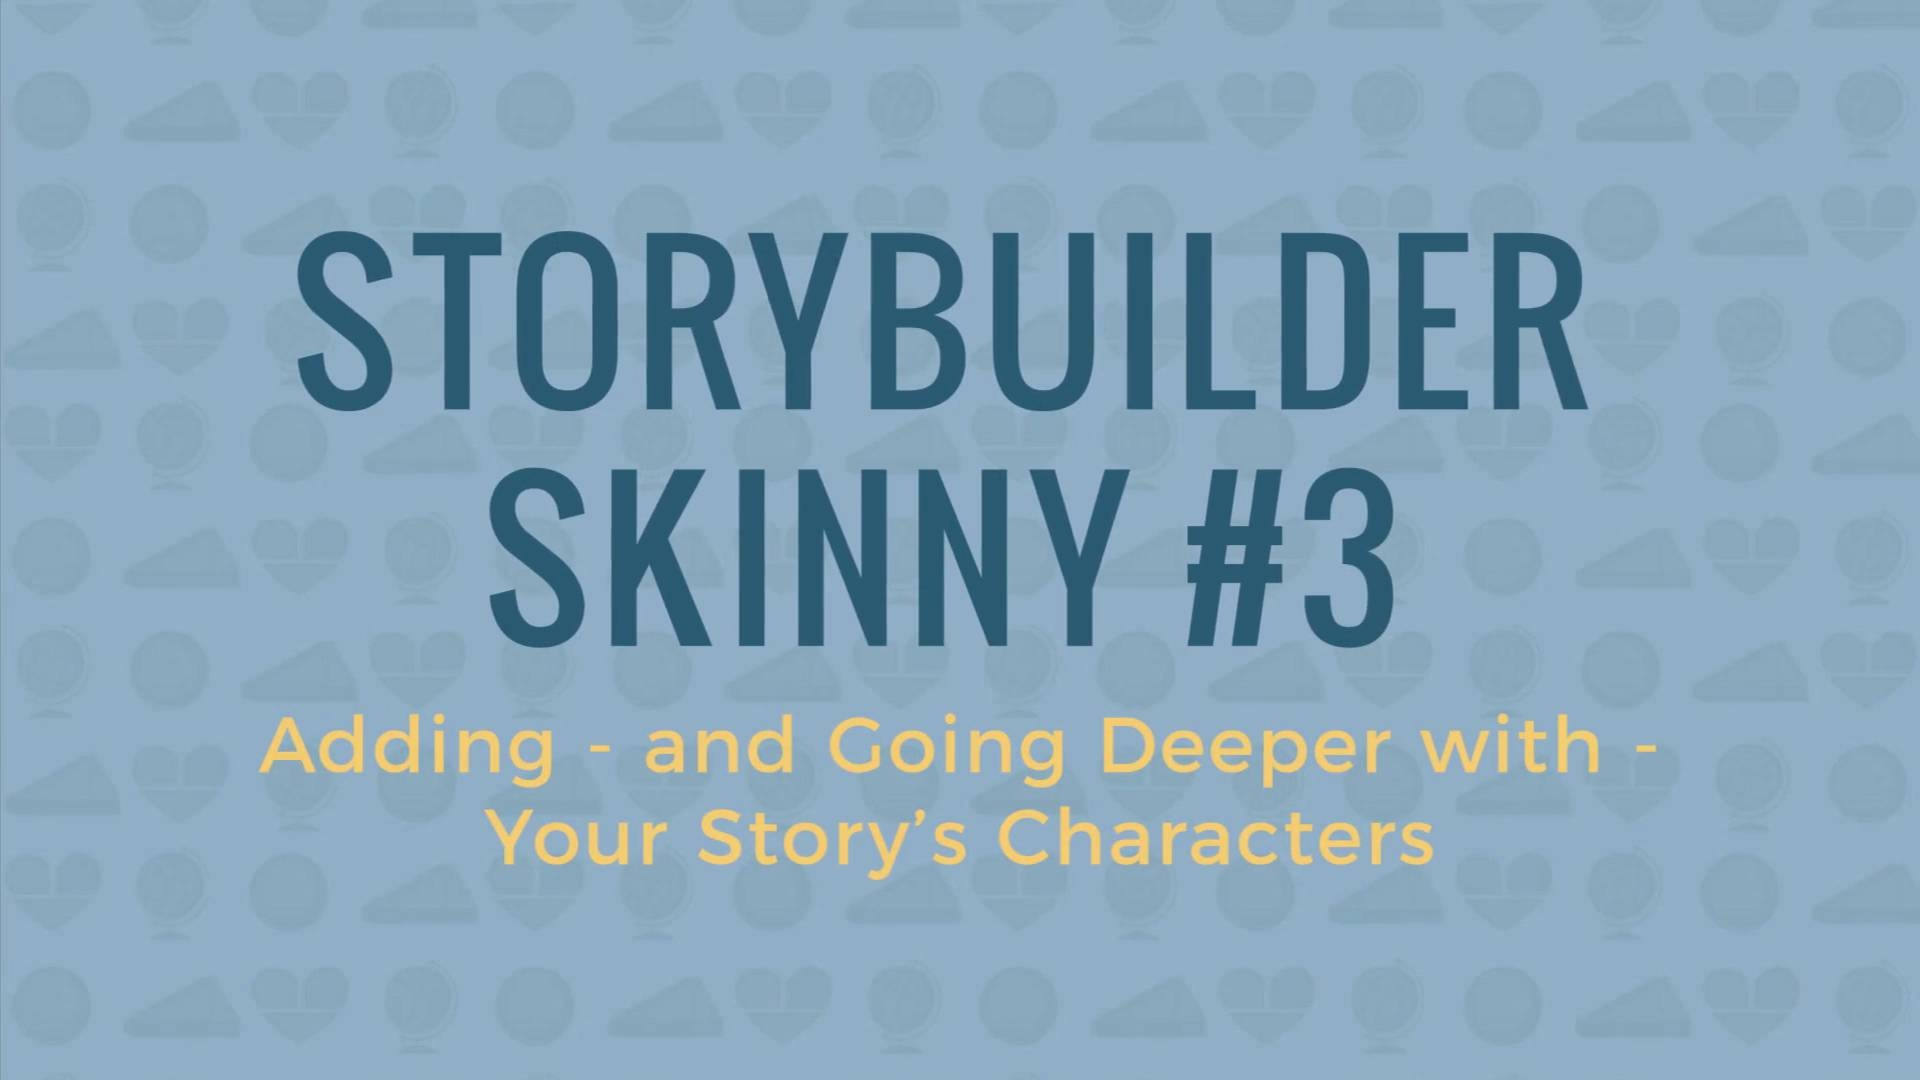 Wistia video thumbnail - Skinny #3 (Adding Characters)